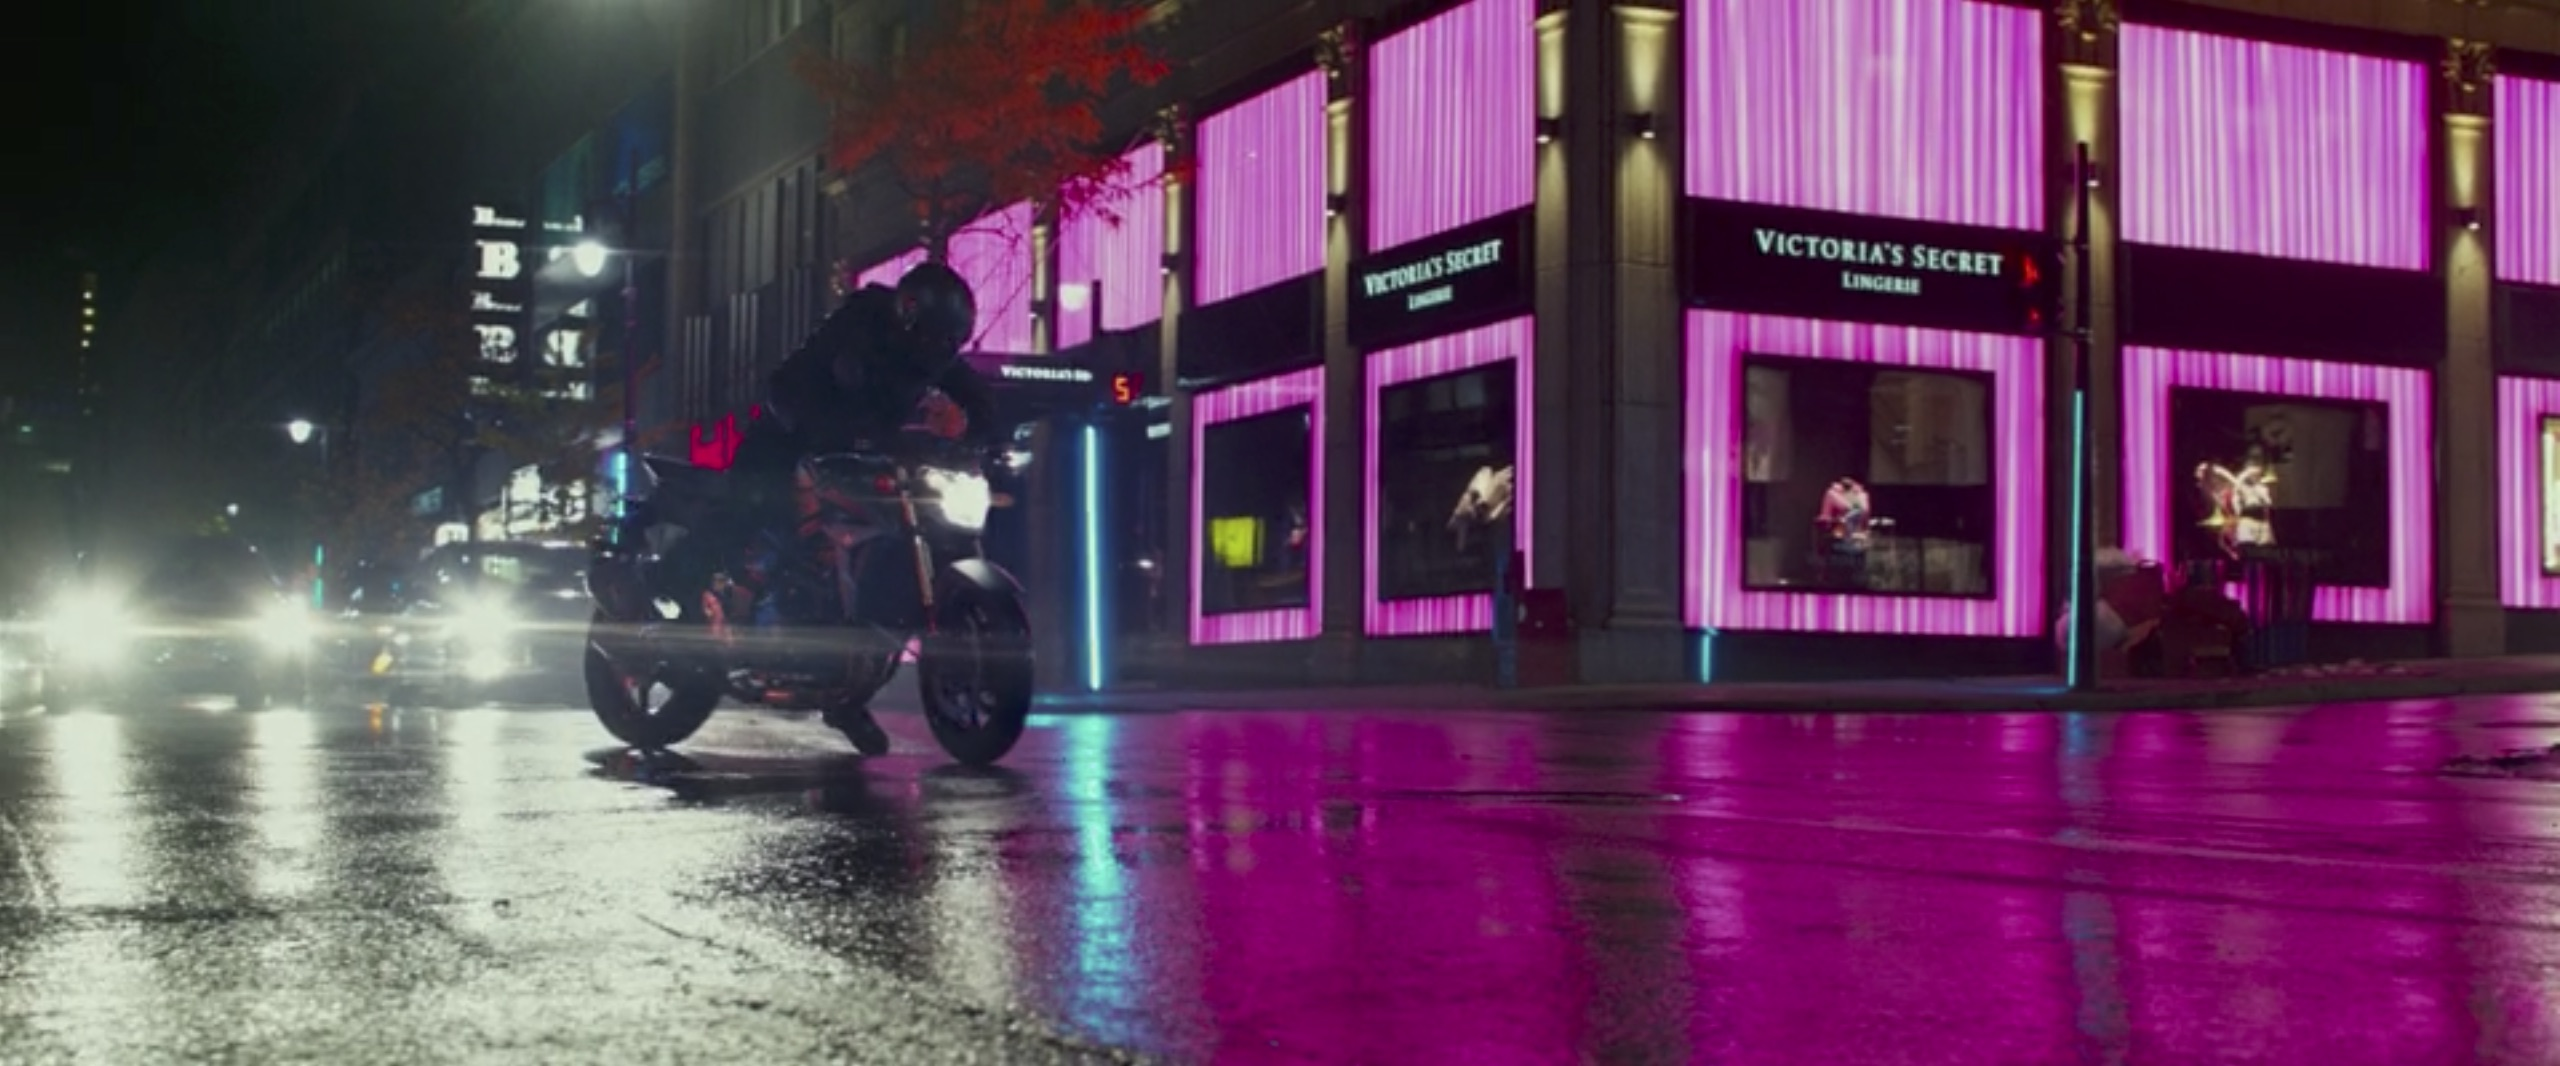 John Wick: Chapter 2 motorcycle chase